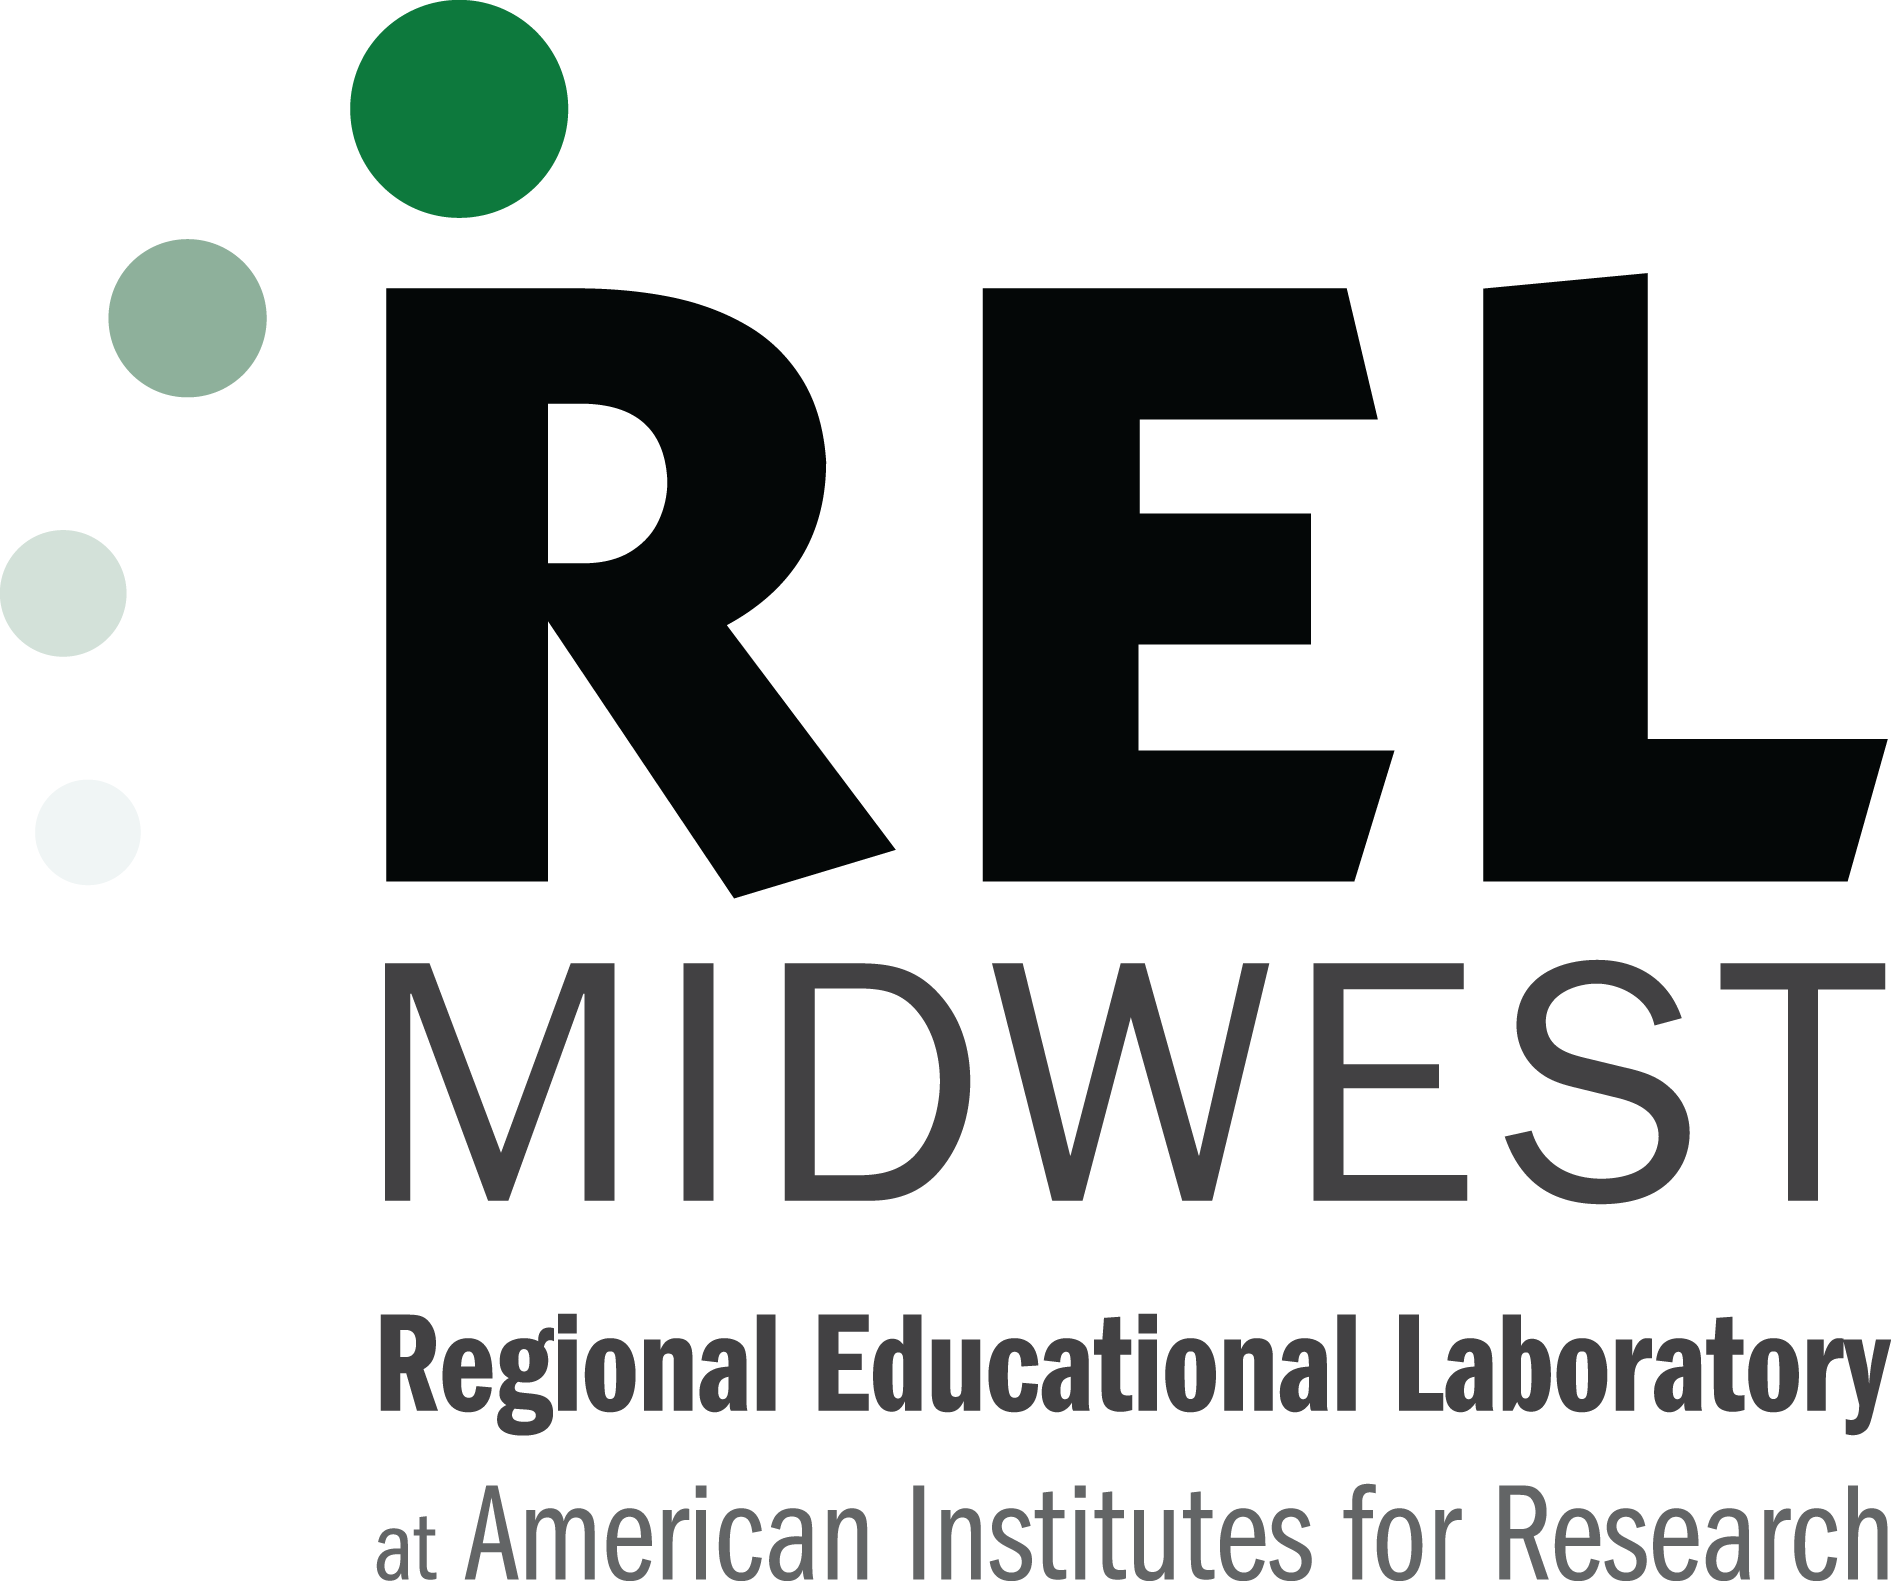 REL Midwest Logo.png